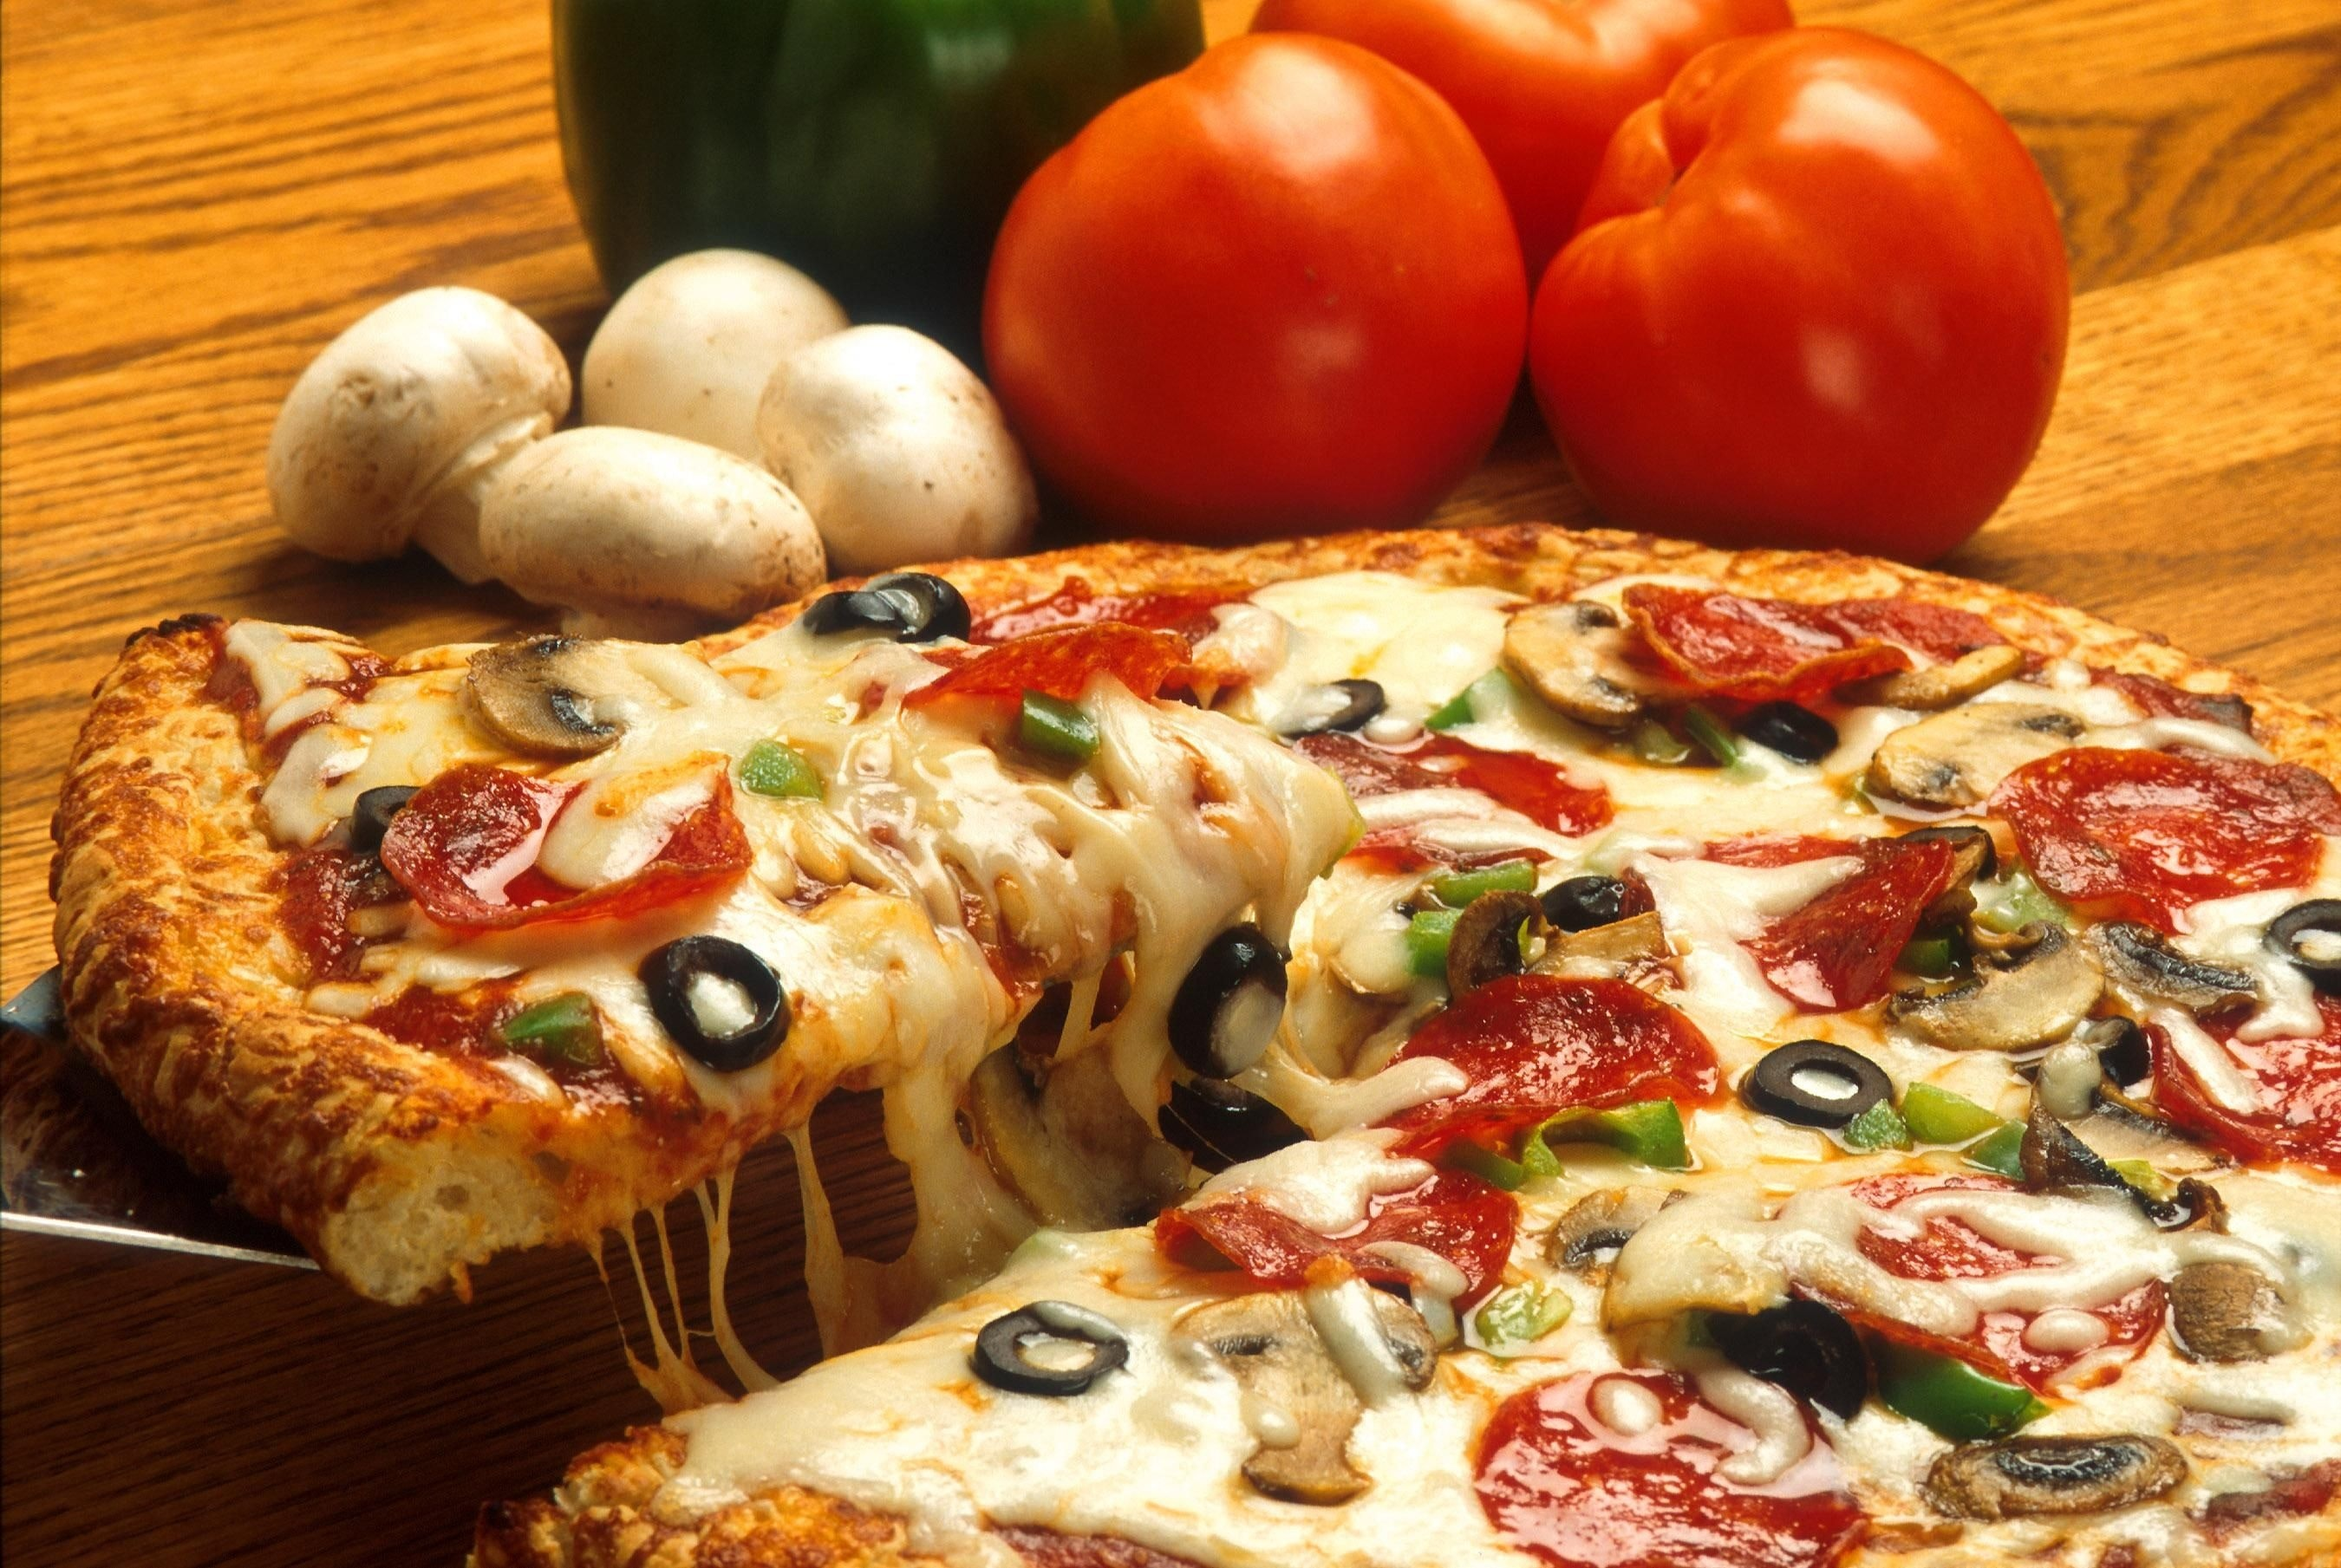 Vegan, vegetarian searches for fast-food chains ranked ...